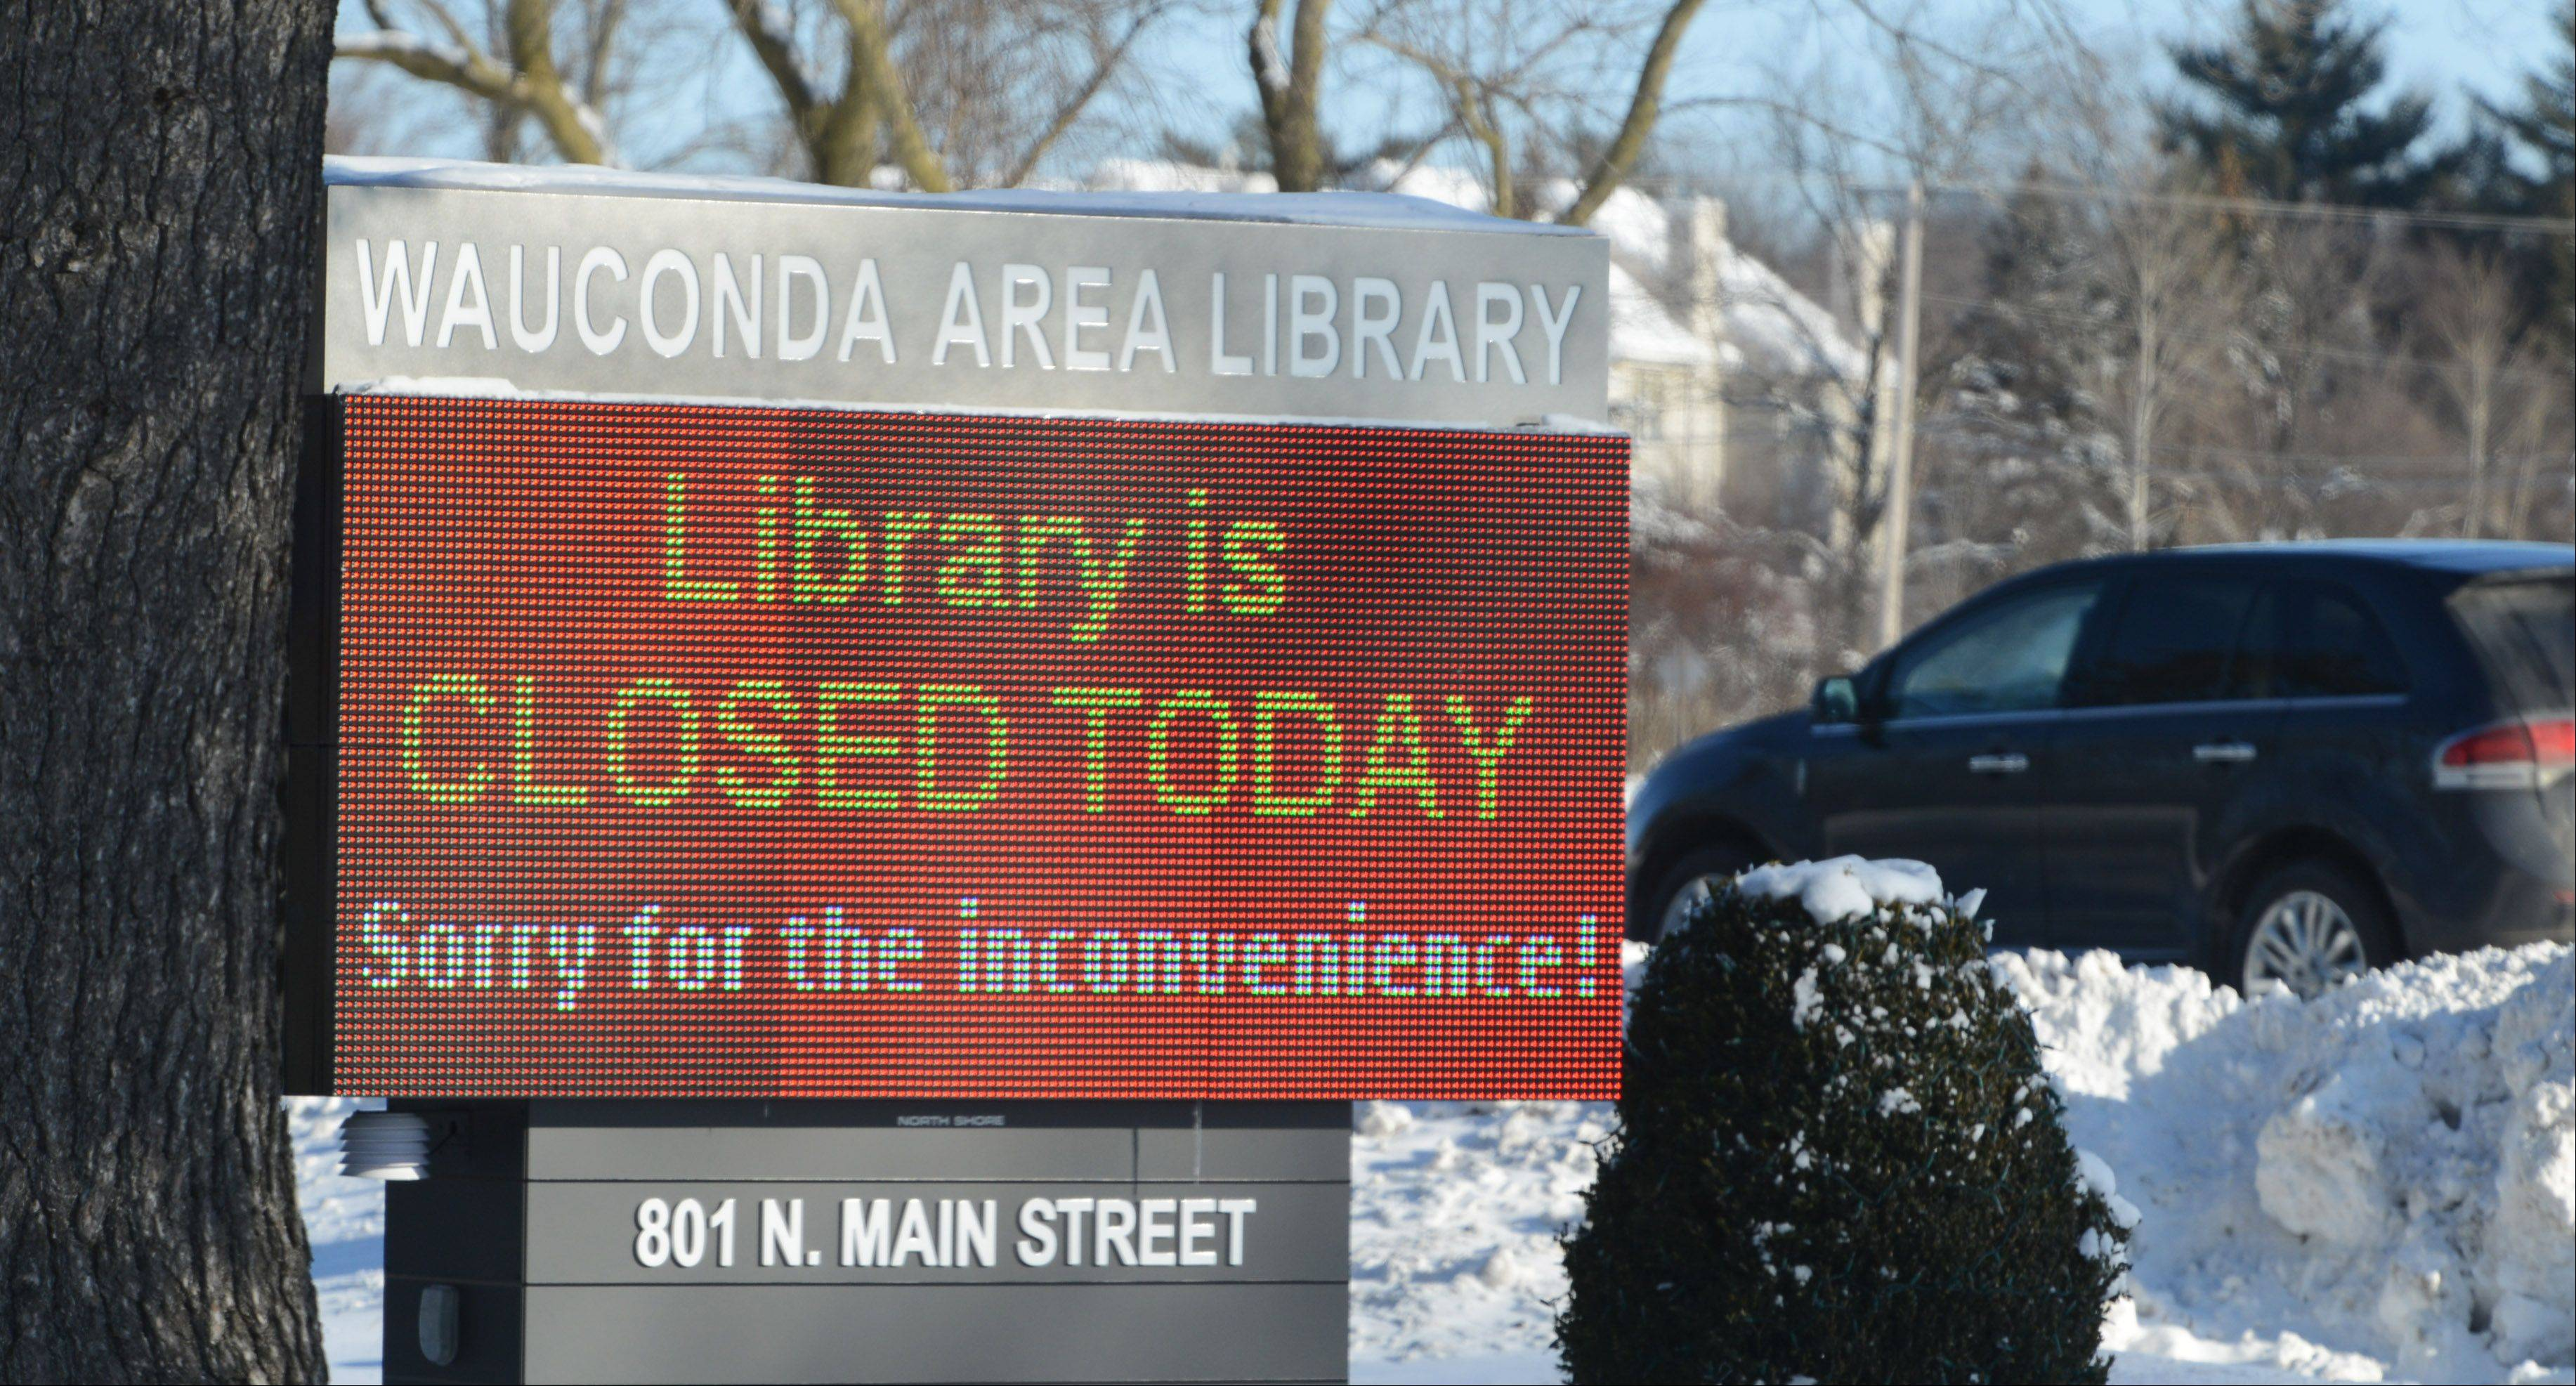 Cold leaves suburban libraries facing tough choice whether to open